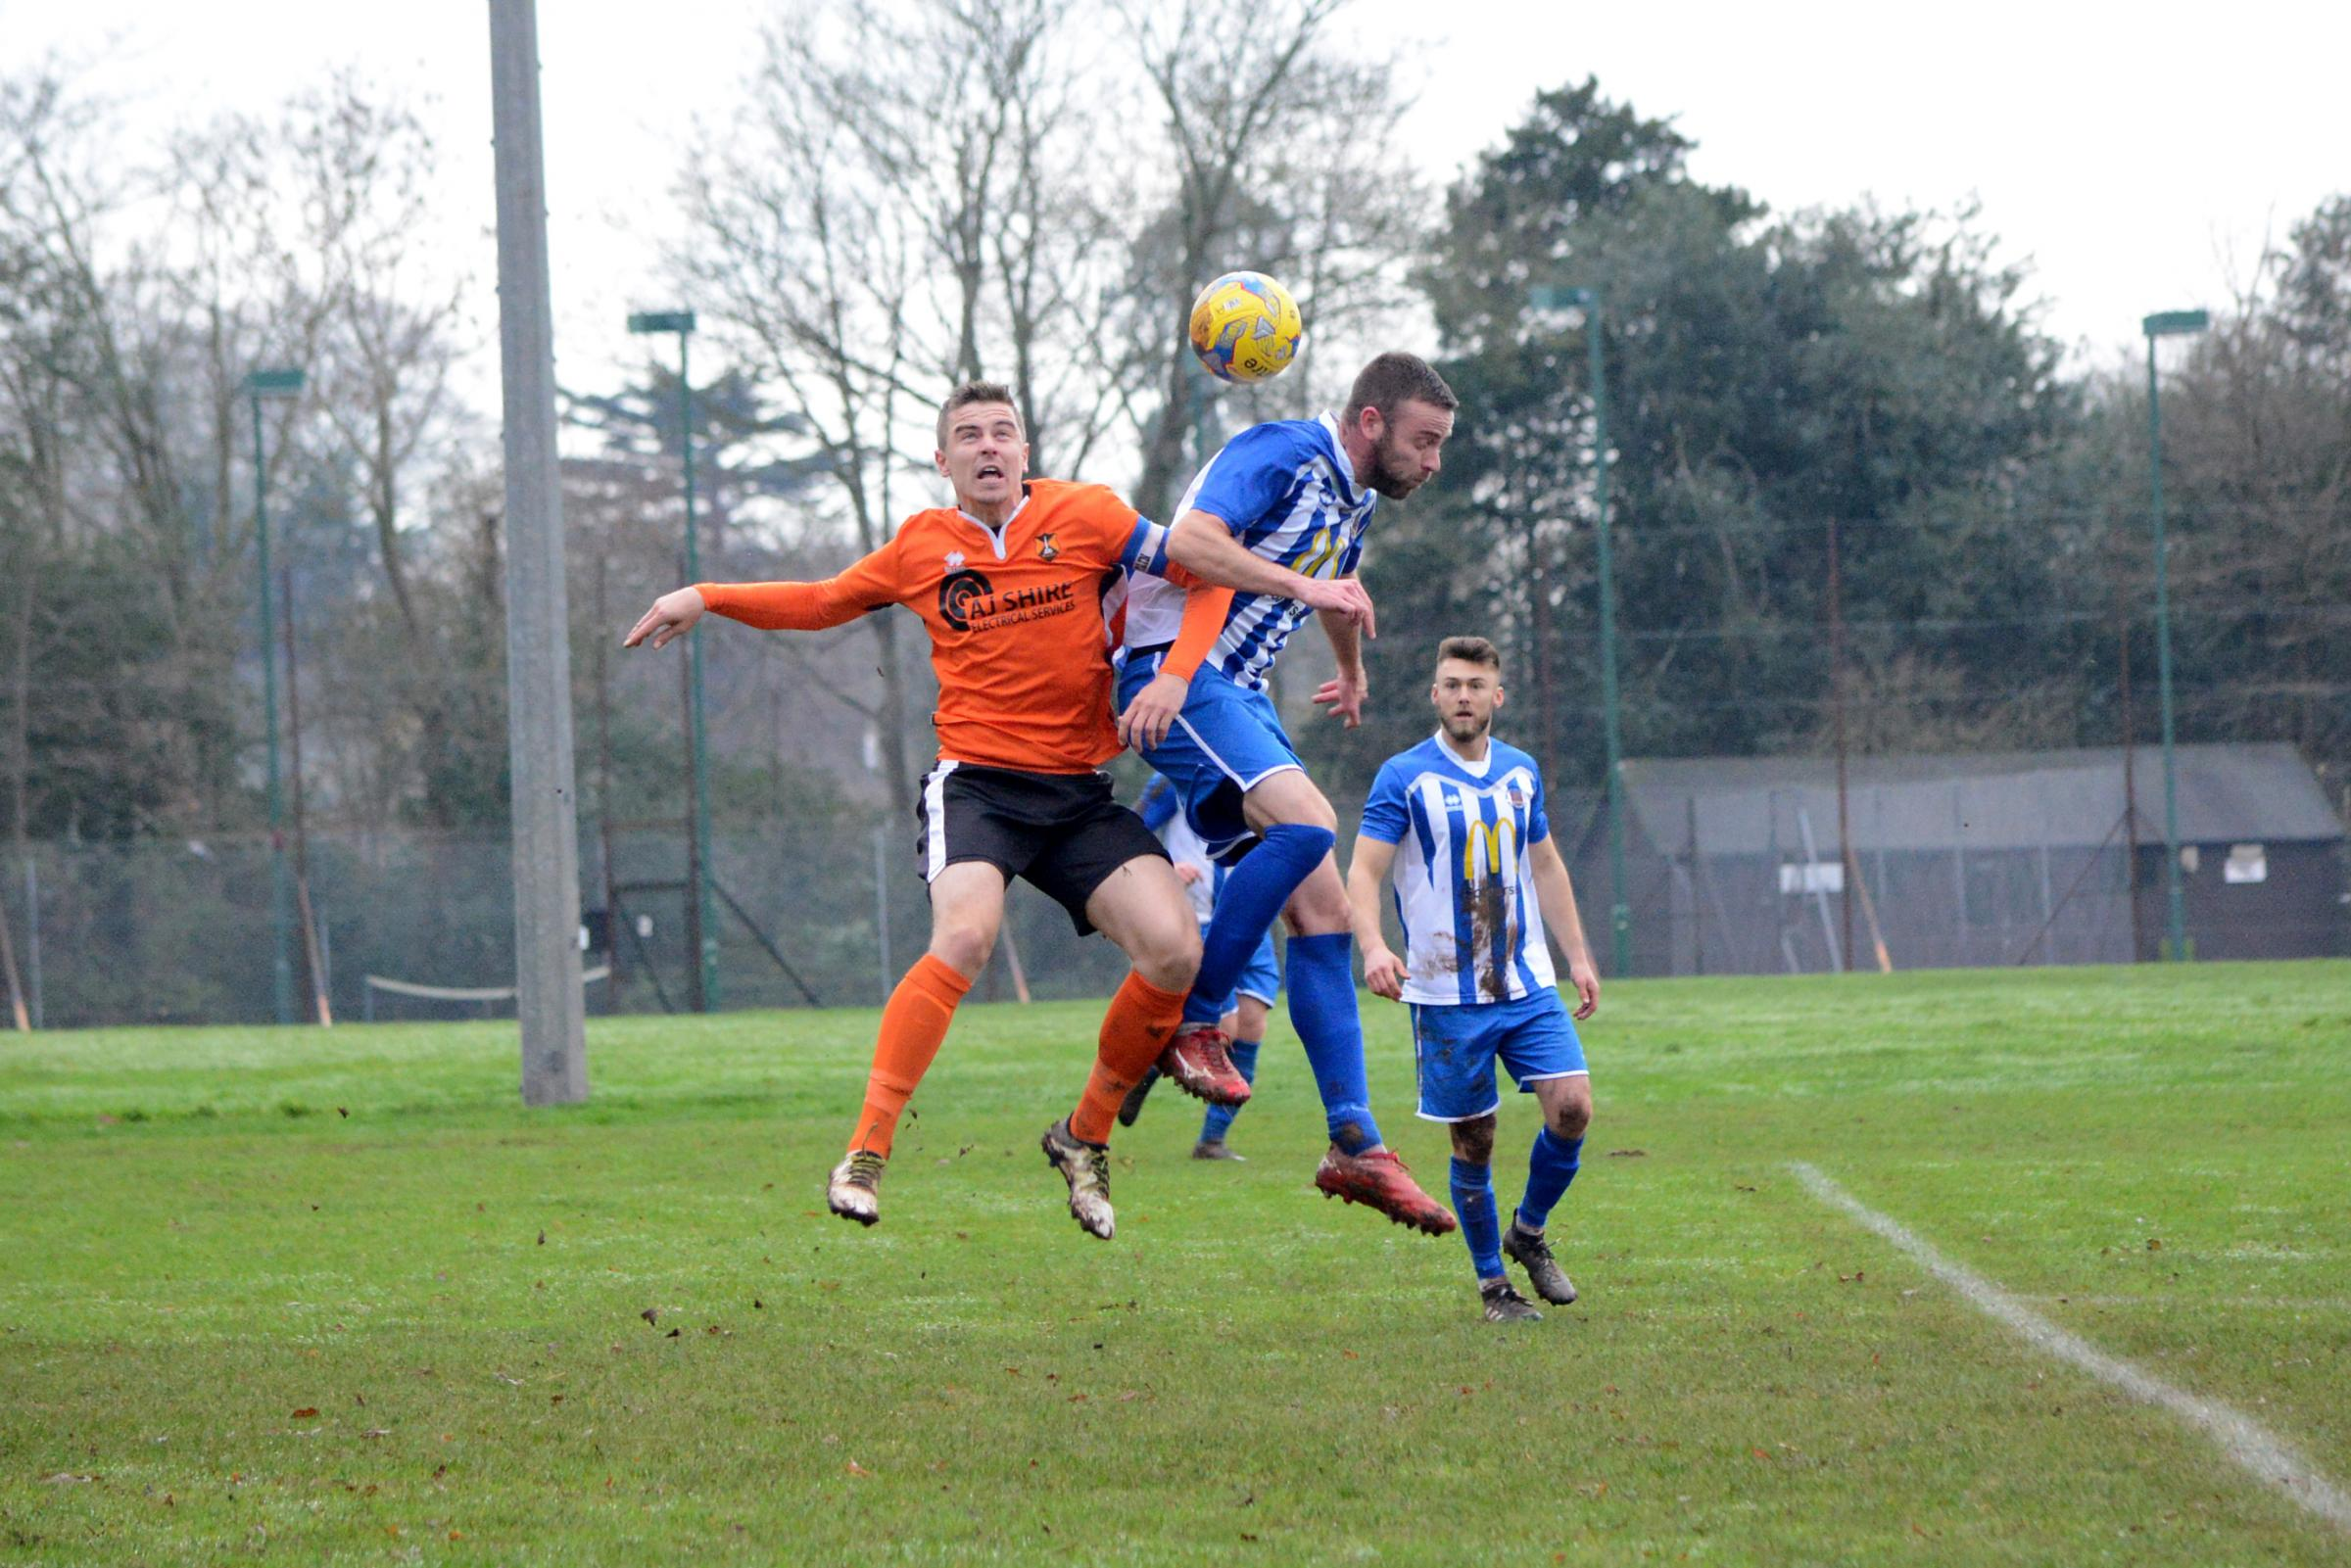 BLOW: Wellington captain Sam Bryant (orange kit) departed with an injury against Brislington. Pic: Aisling Magill